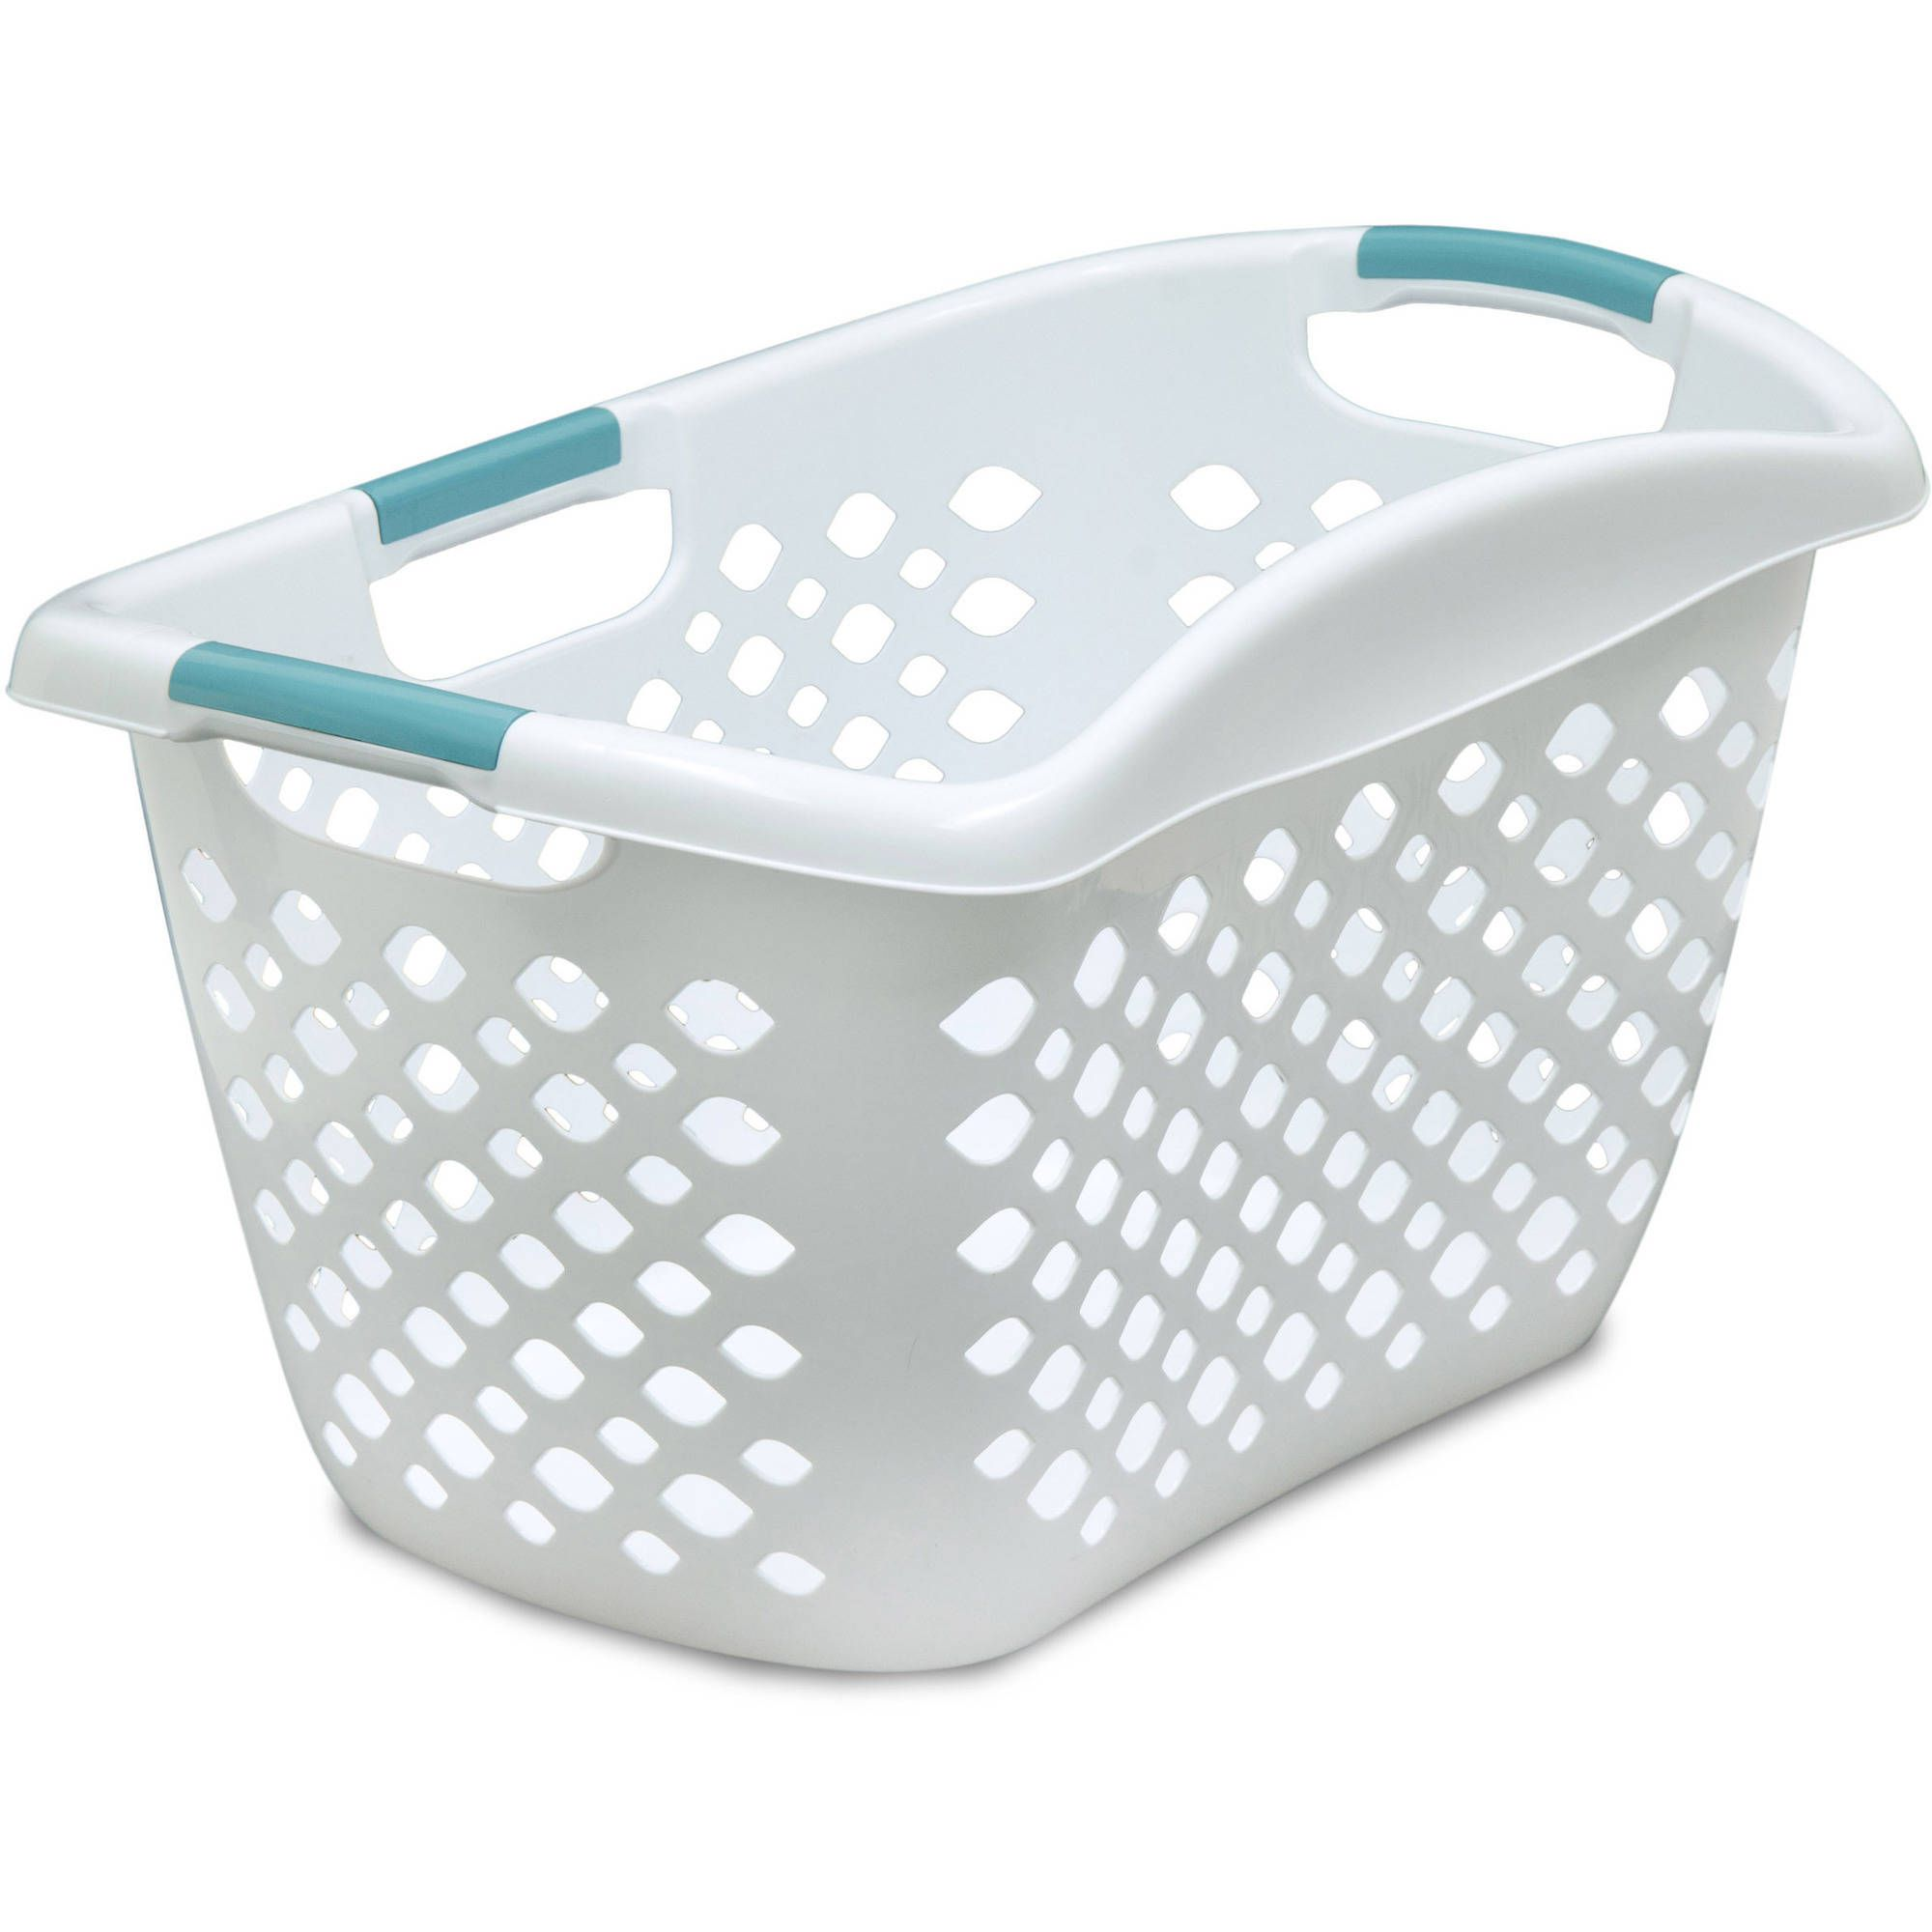 Best Plastic Home Logic 1 8 Bu Large Capacity Hip Grip Laundry Basket